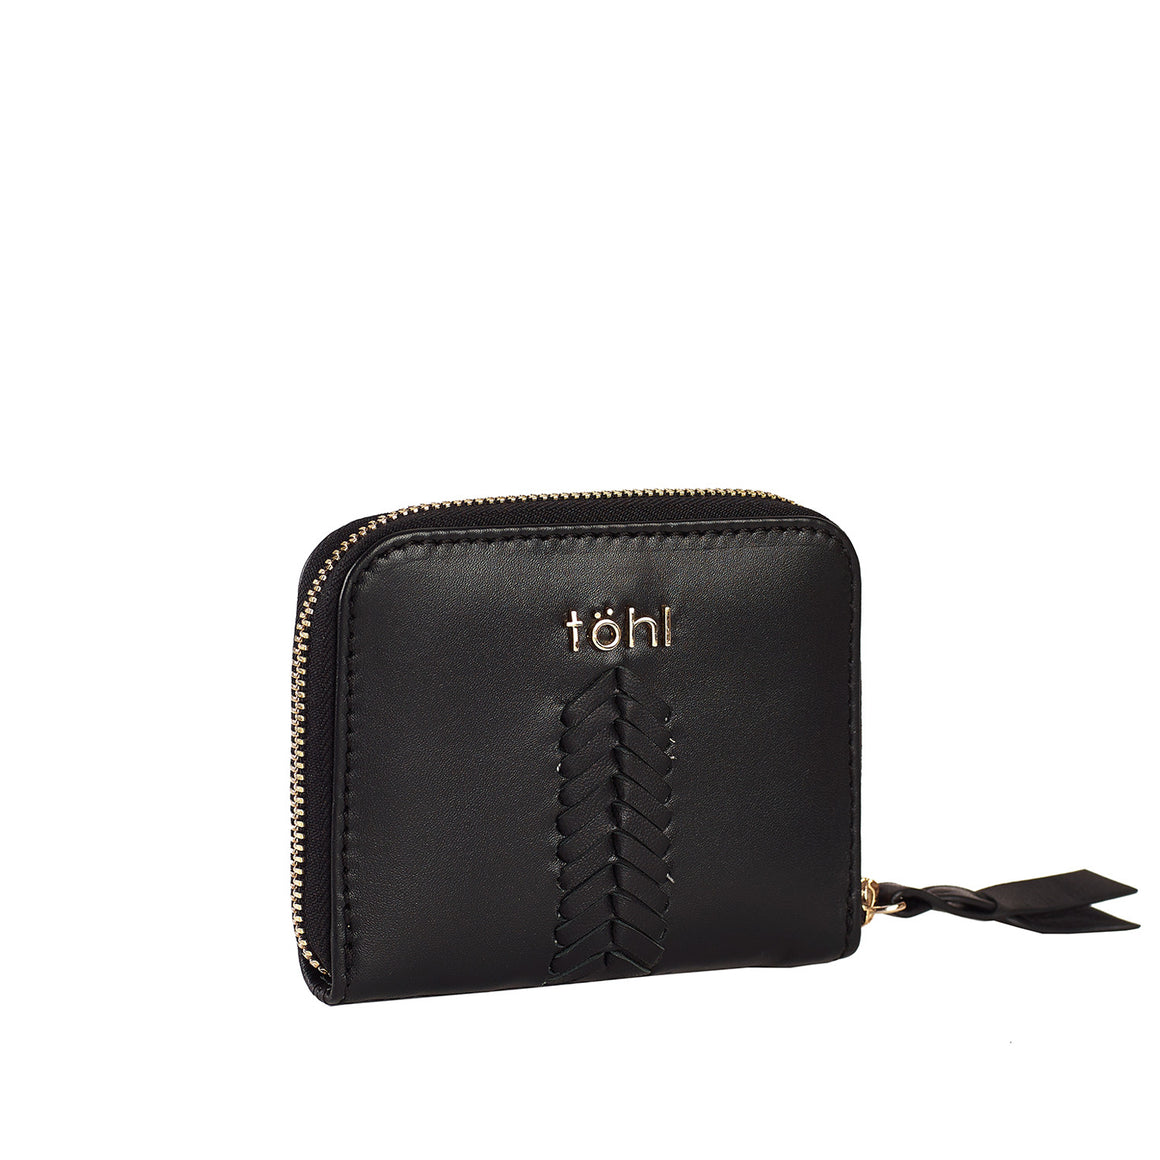 WT 0008 - TOHL JONI WOMEN'S COMPACT WALLET - CHARCOAL BLACK